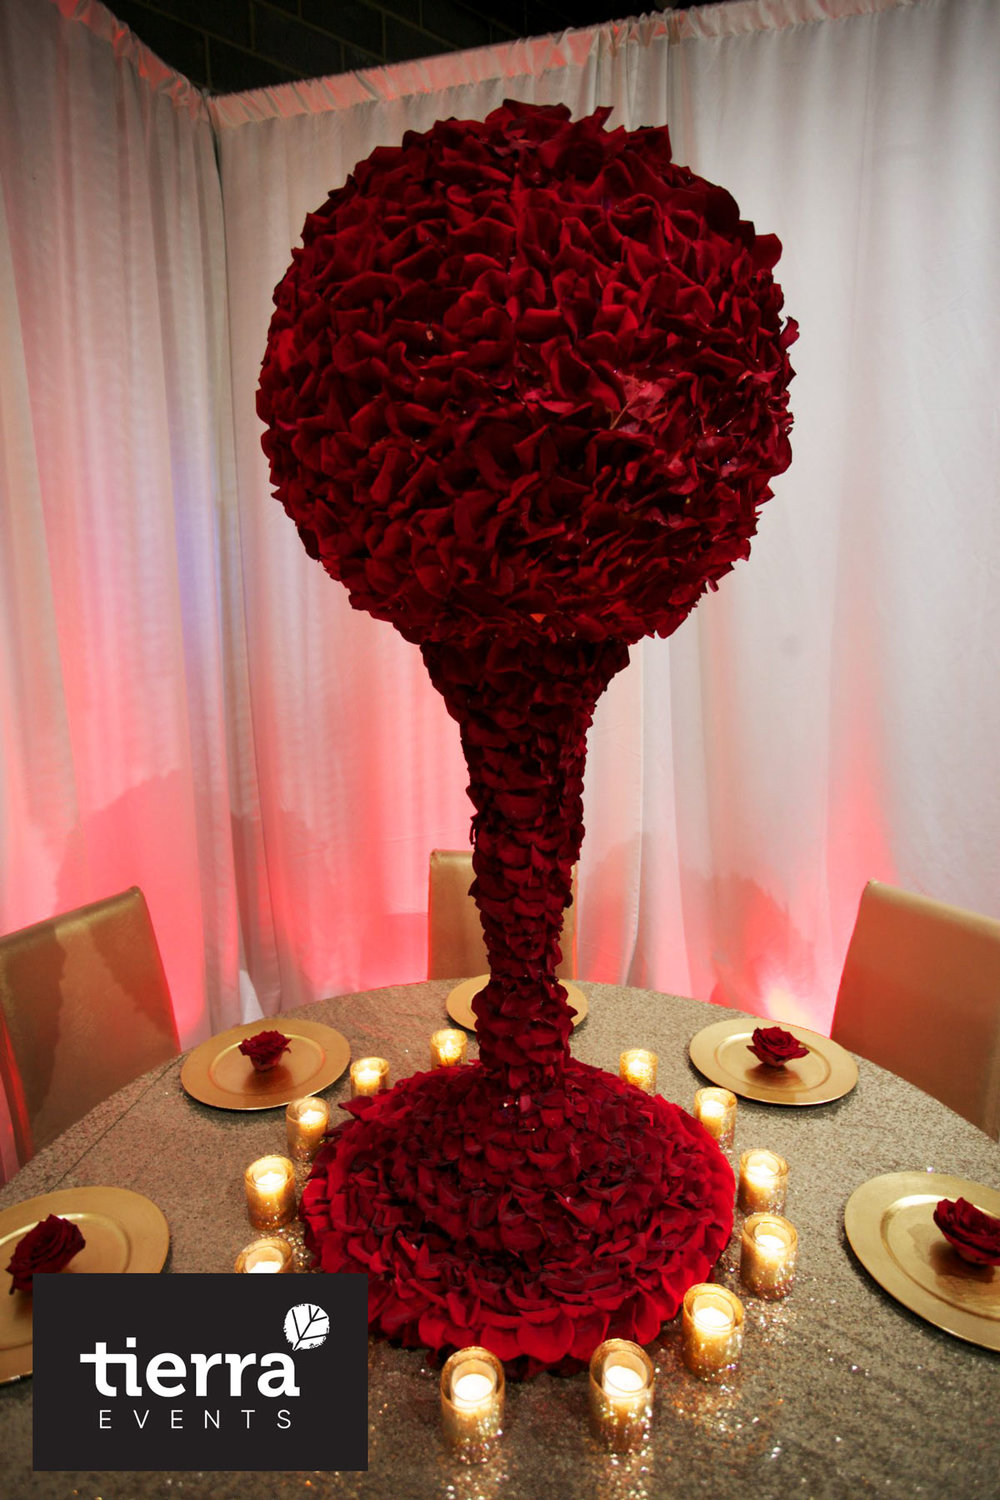 Tall Centerpiece made with real rose petals